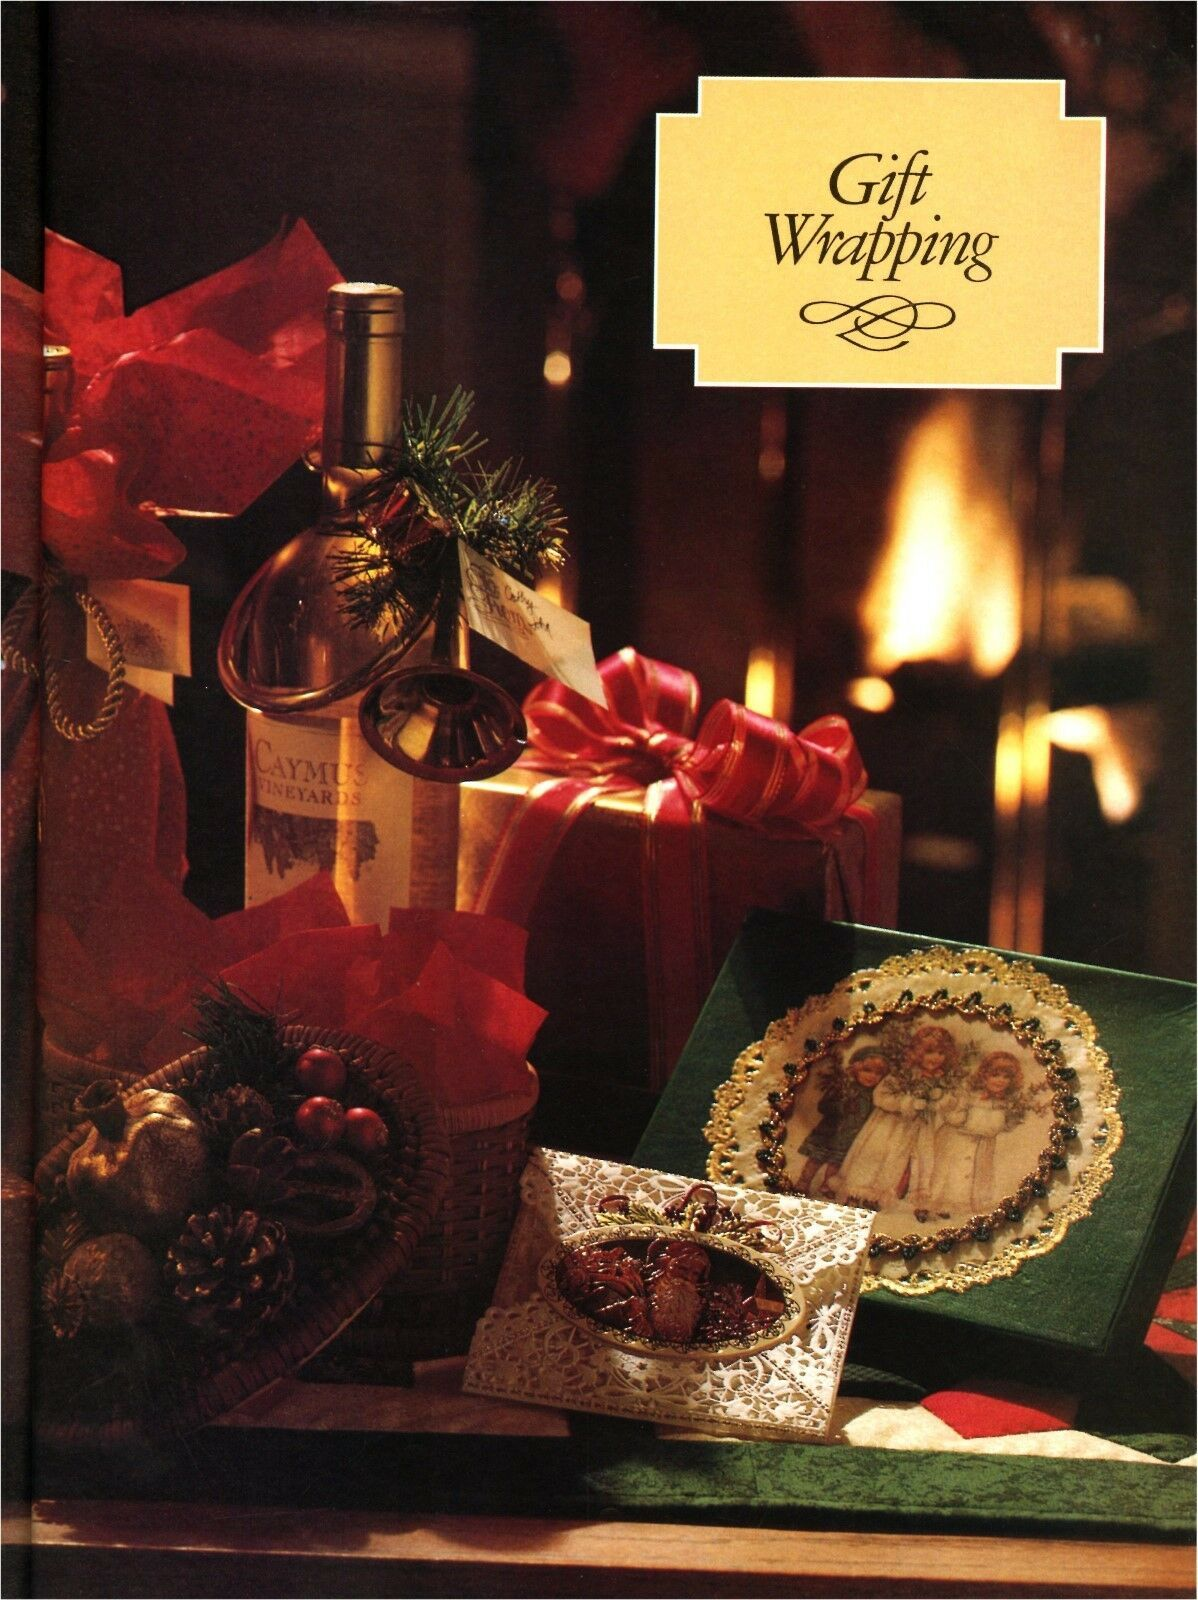 The Home Decorating Institute Hardcover Book Decorating for Christmas 1992